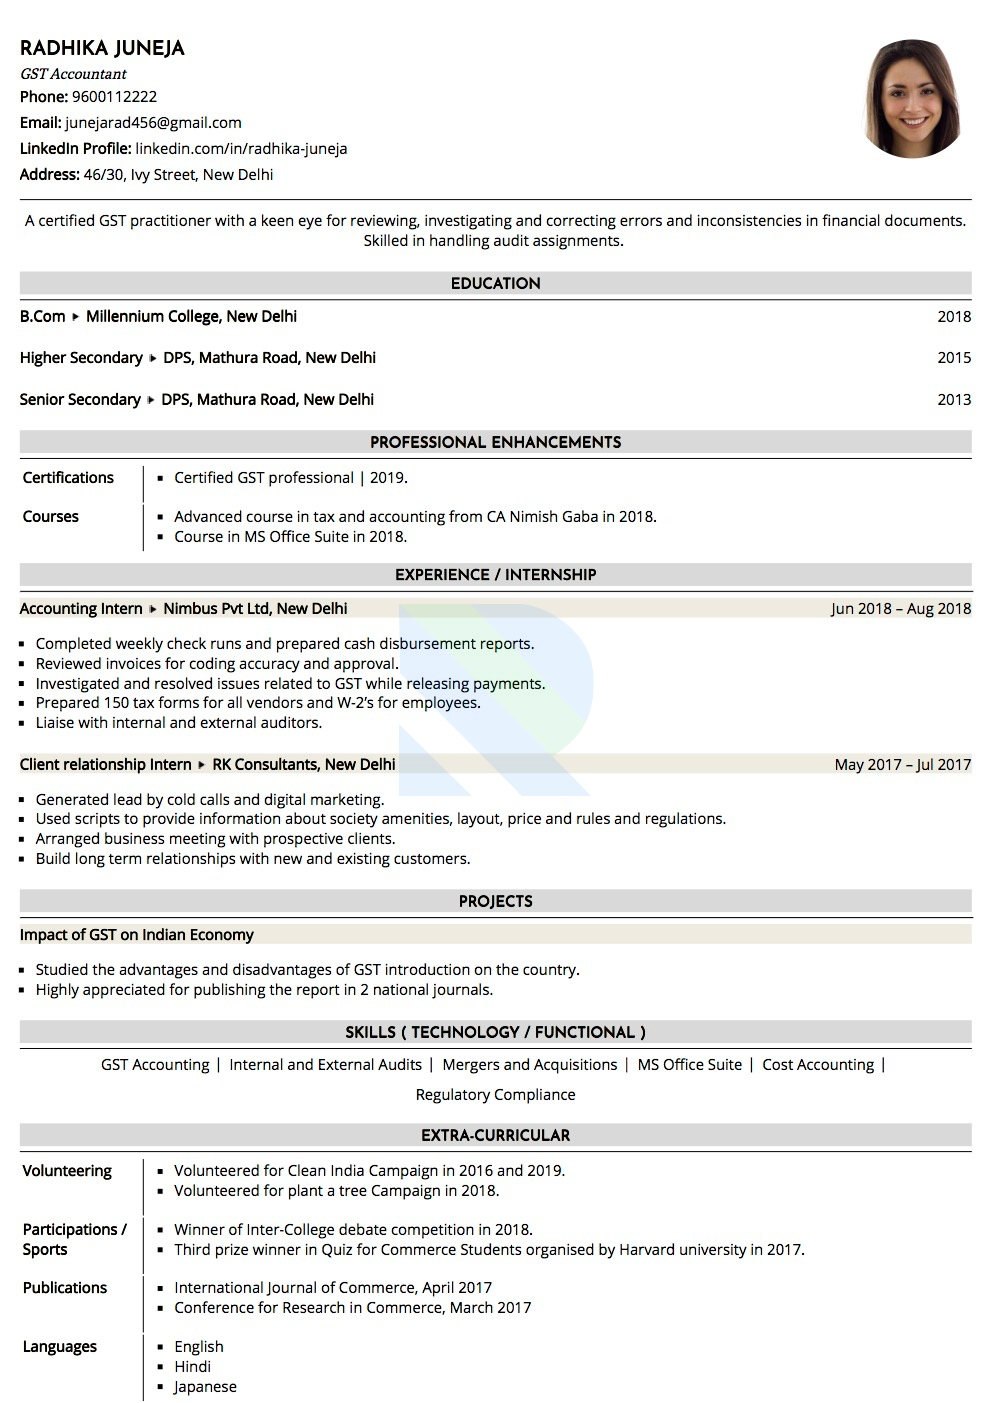 Resume Of Gst Accountant